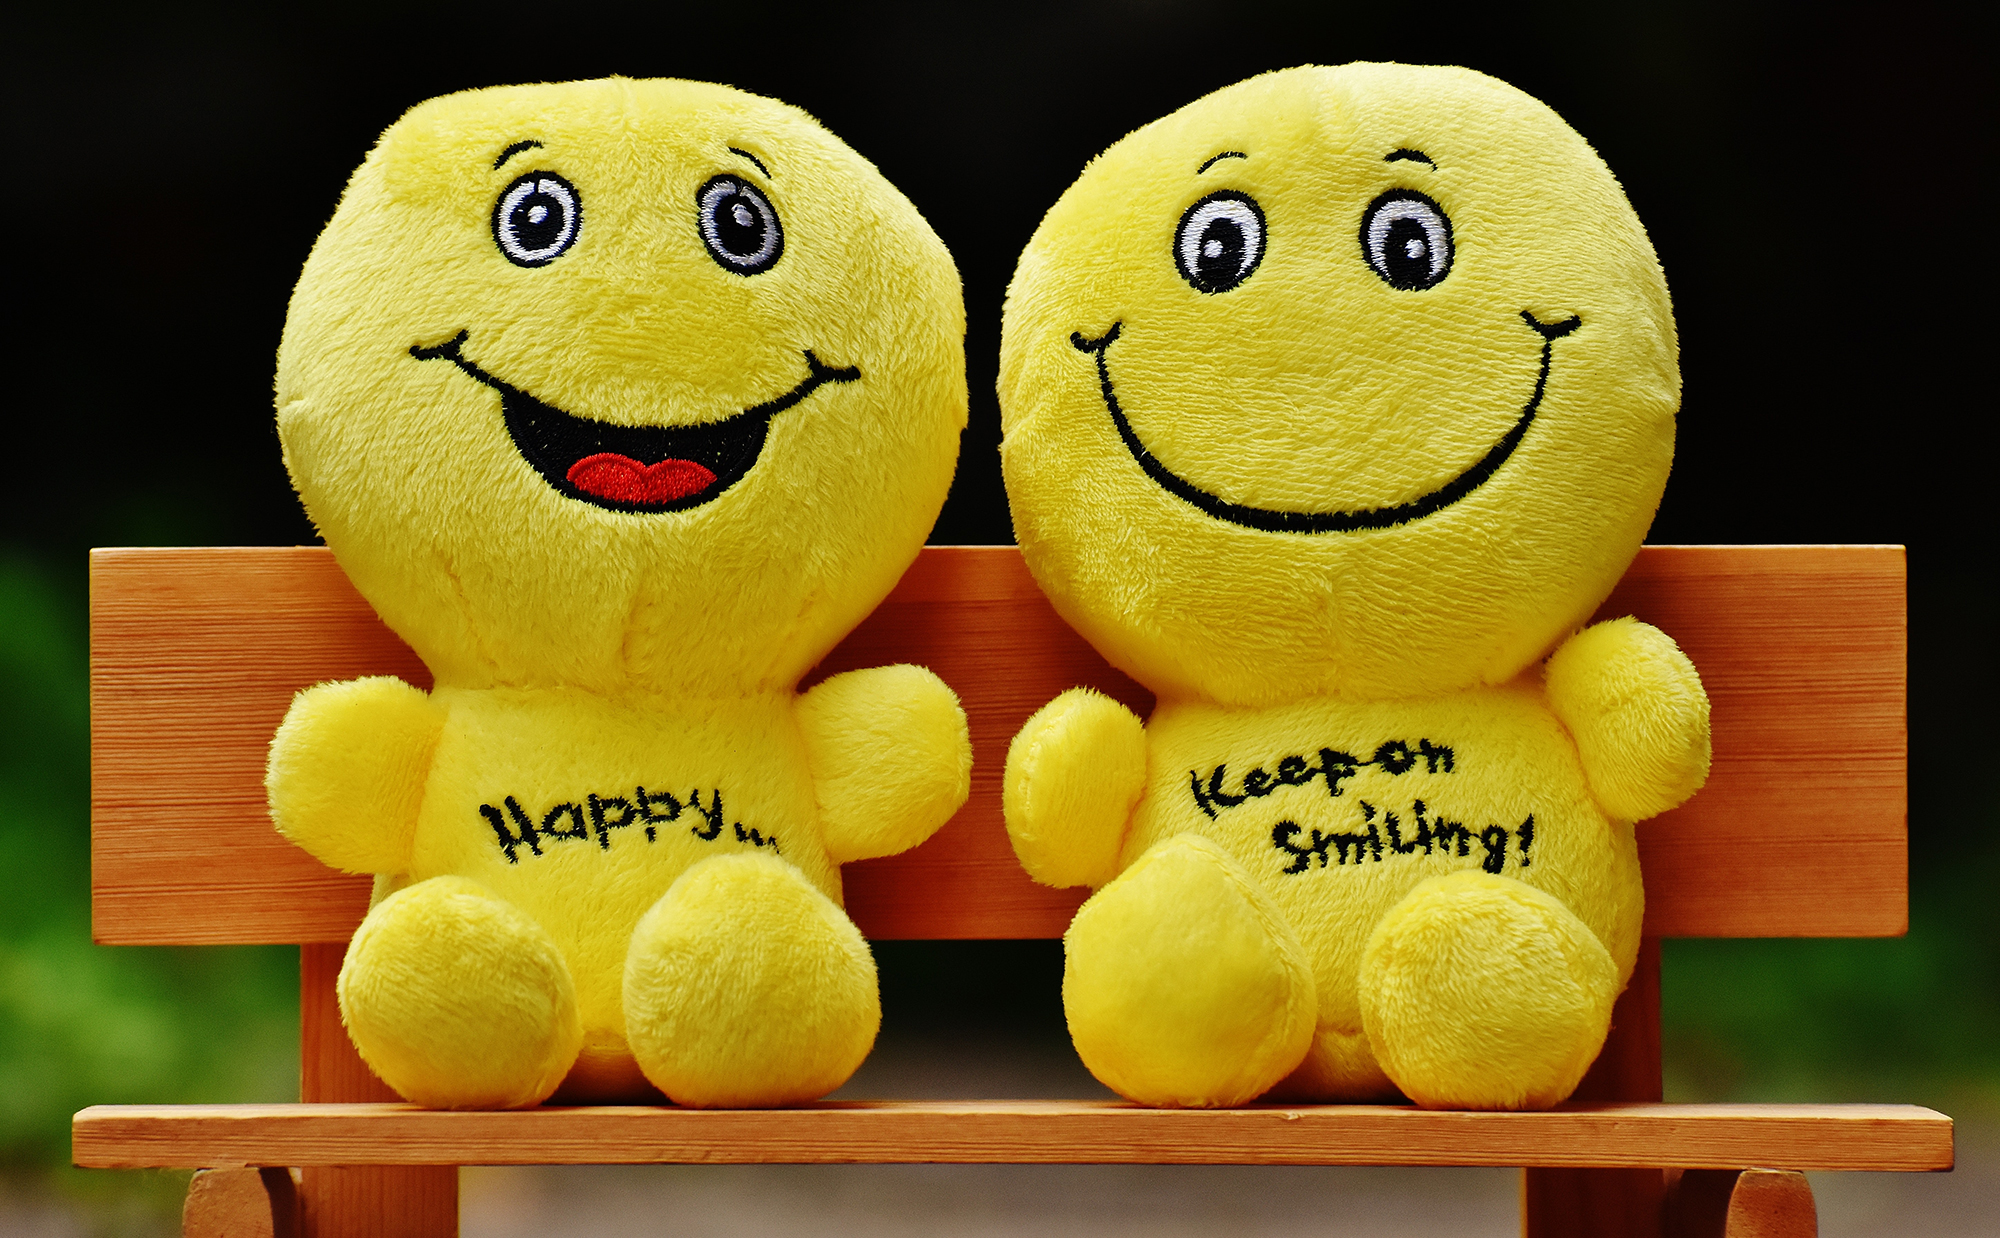 two smiley face plush toys sitting together on a bench